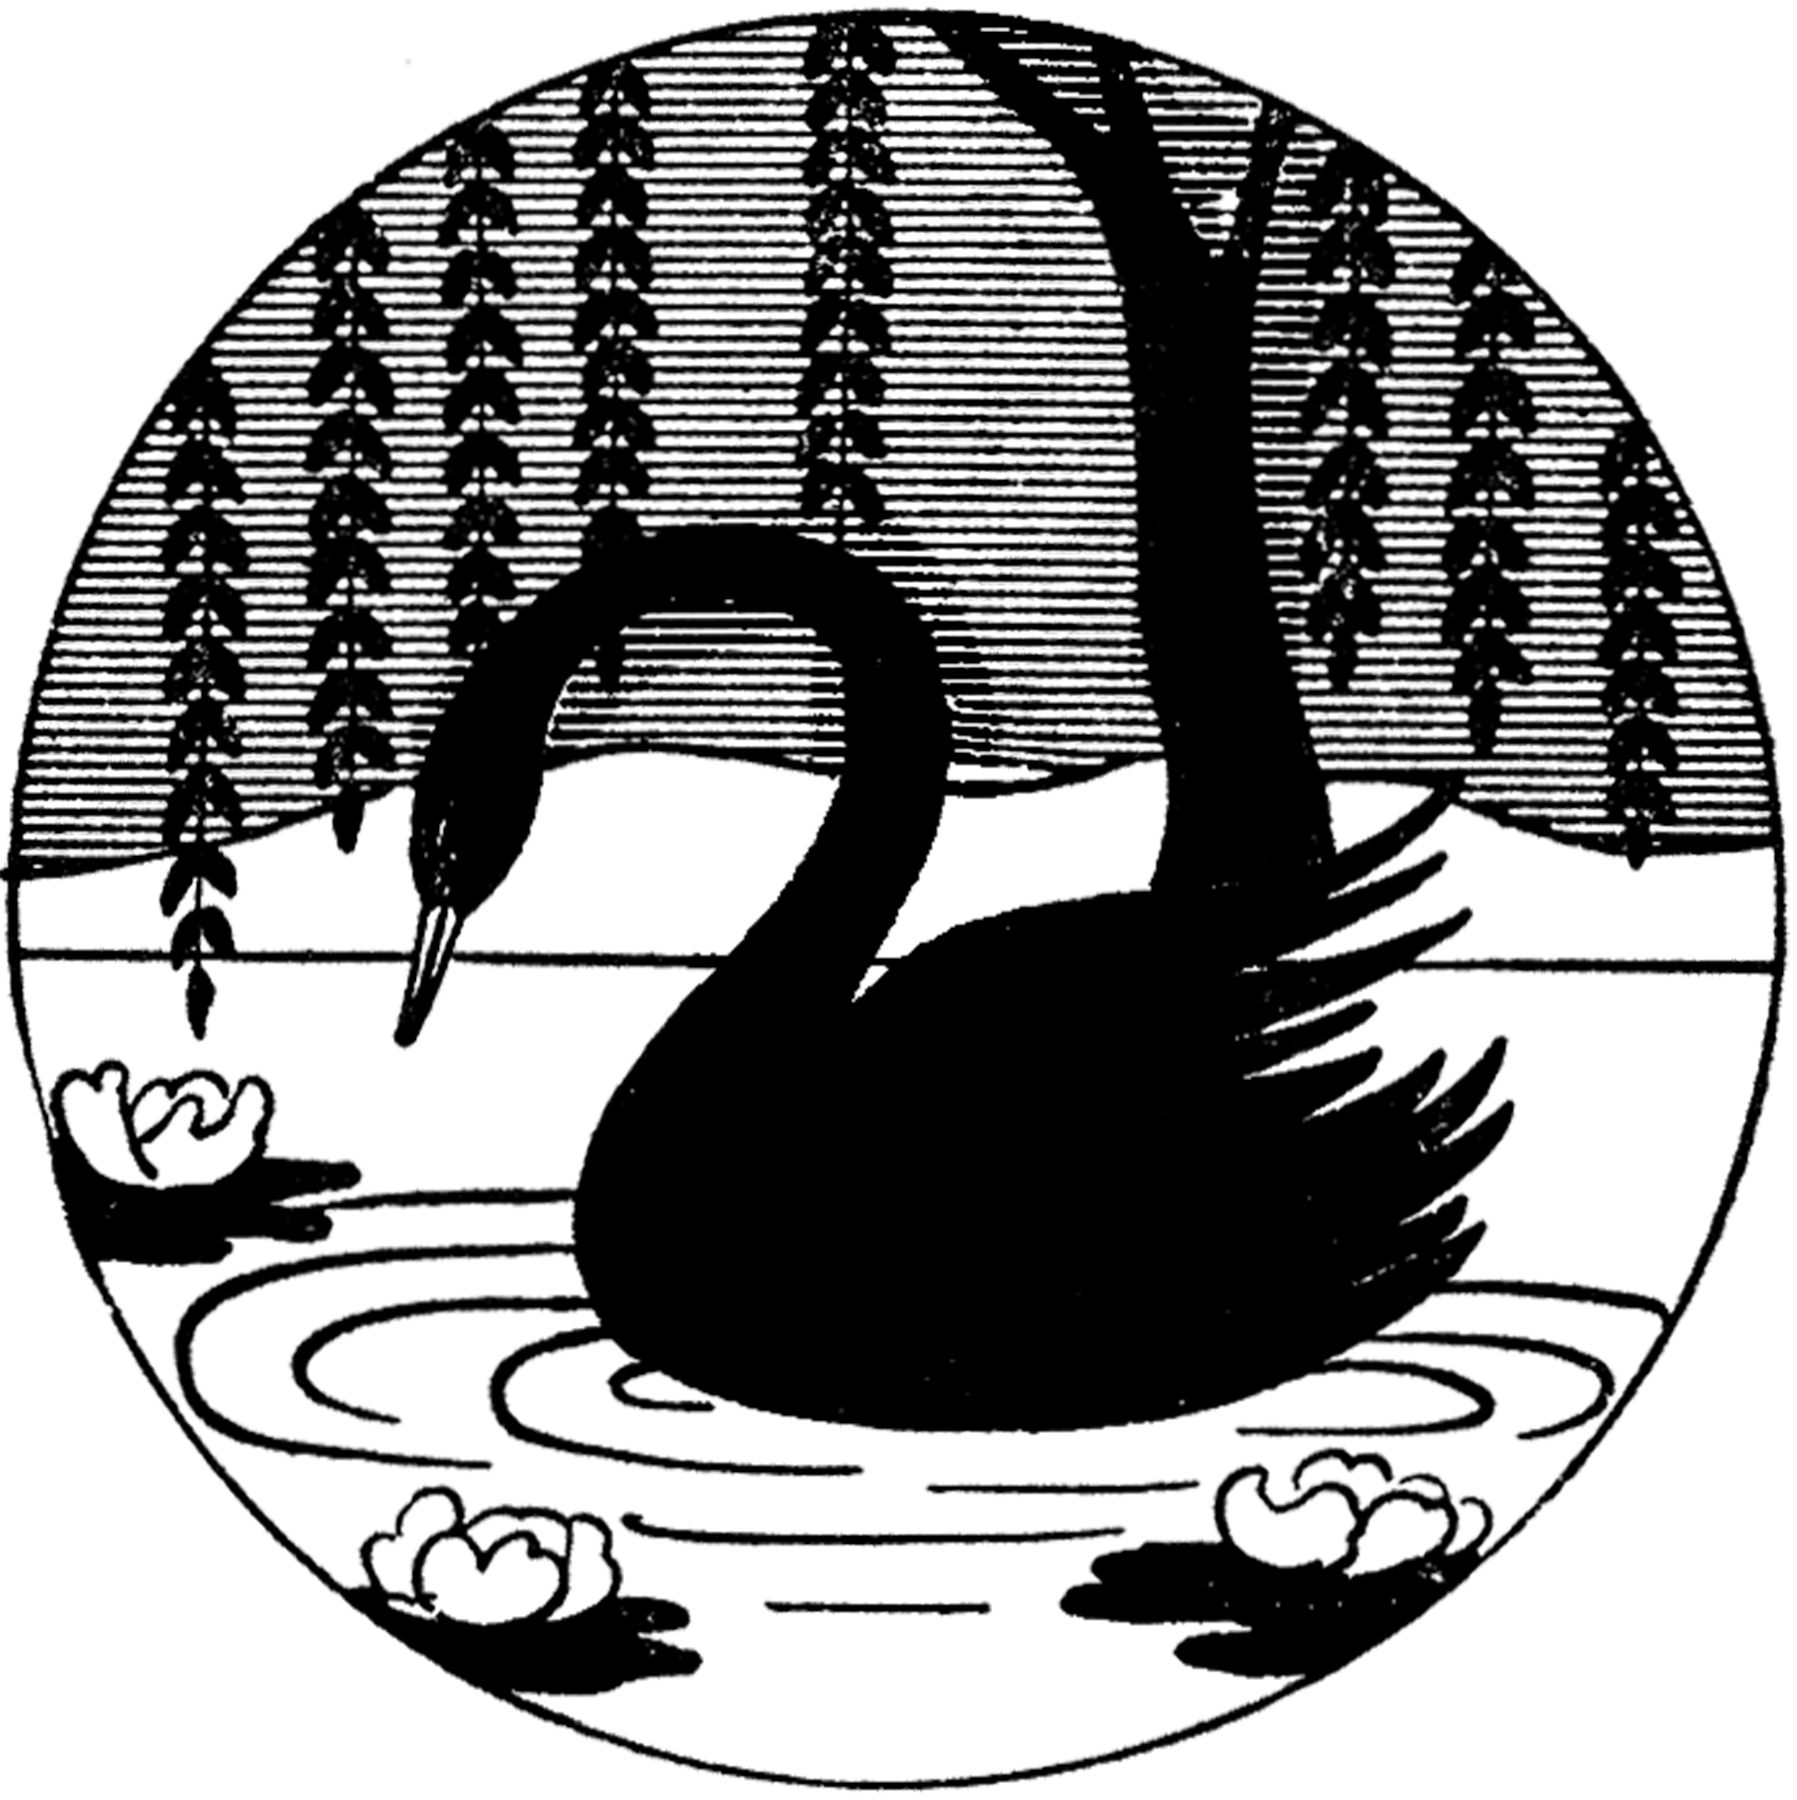 Vintage Black Swan Image Silhouette The Graphics Fairy